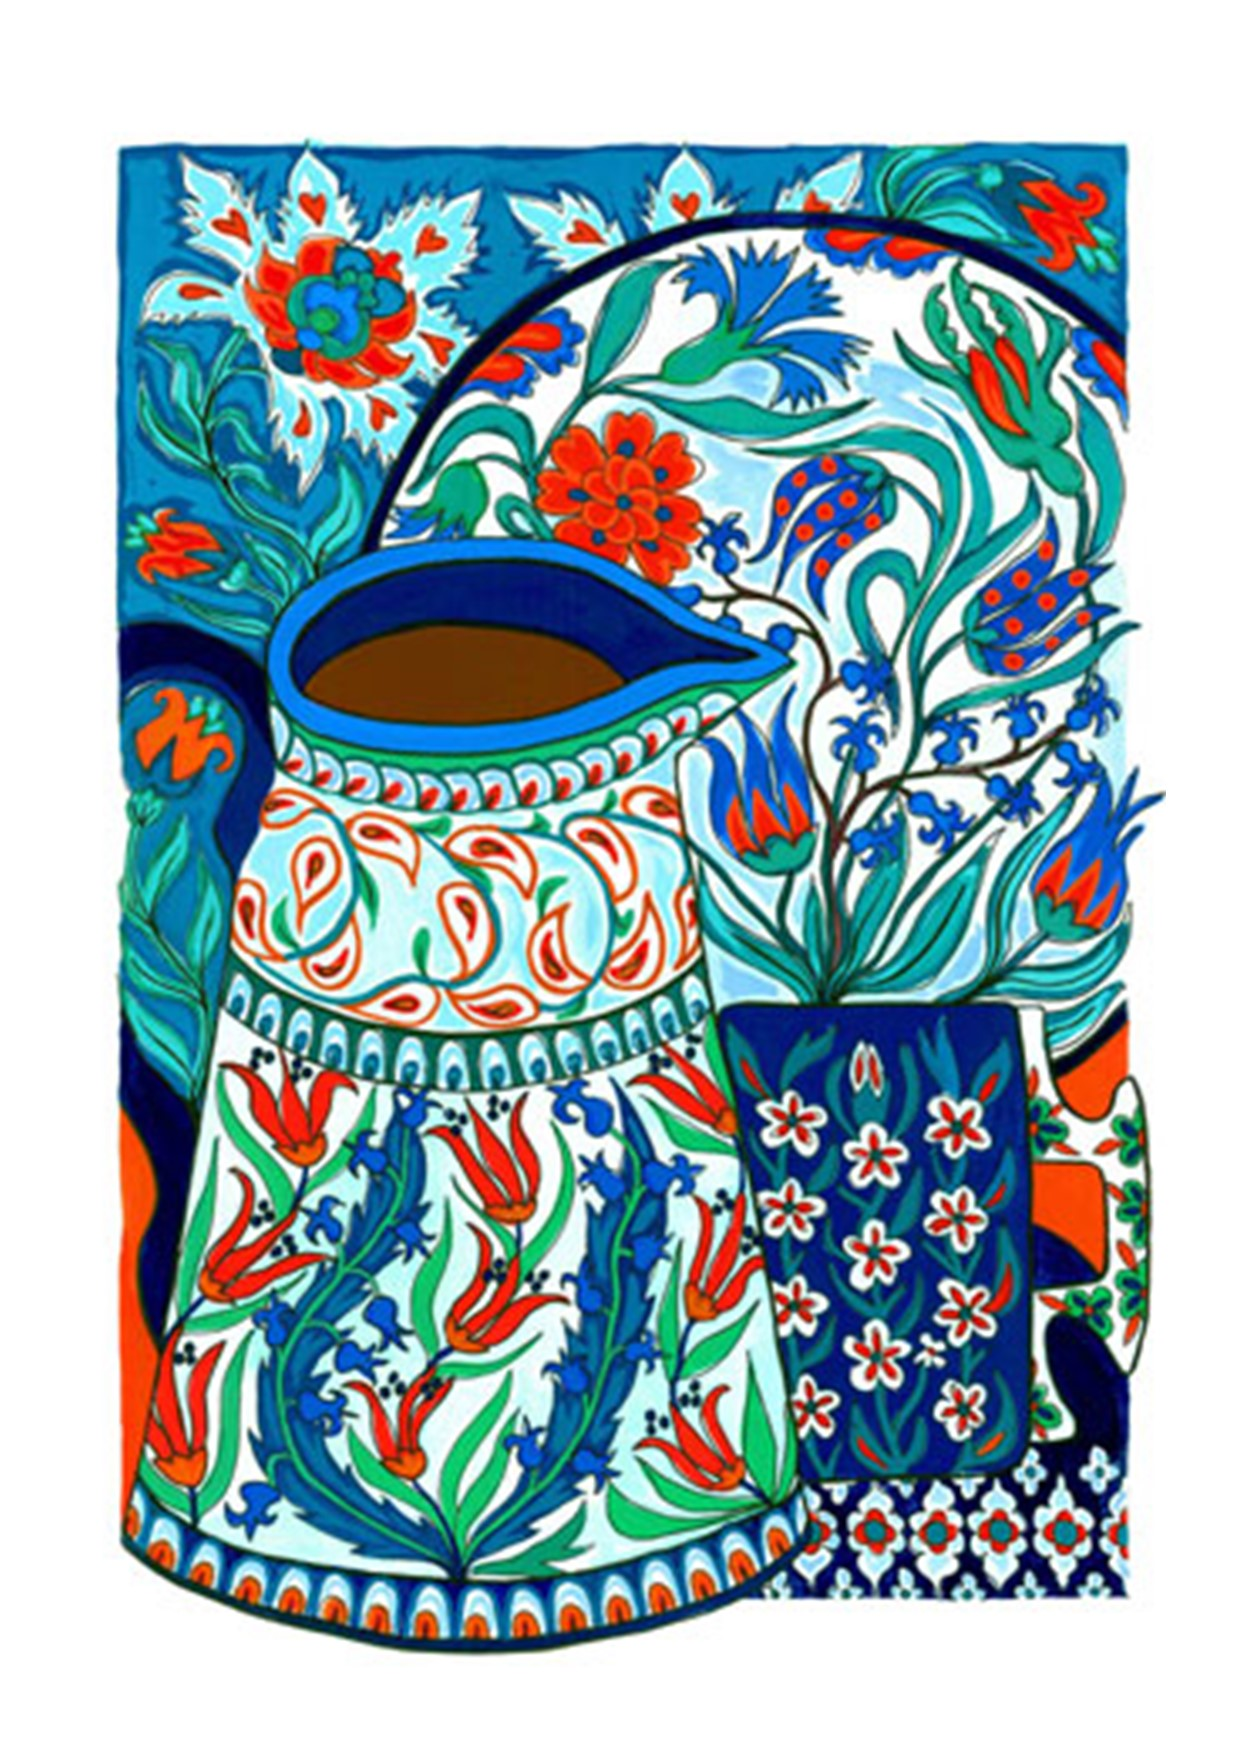 Painting of Iznik pottery